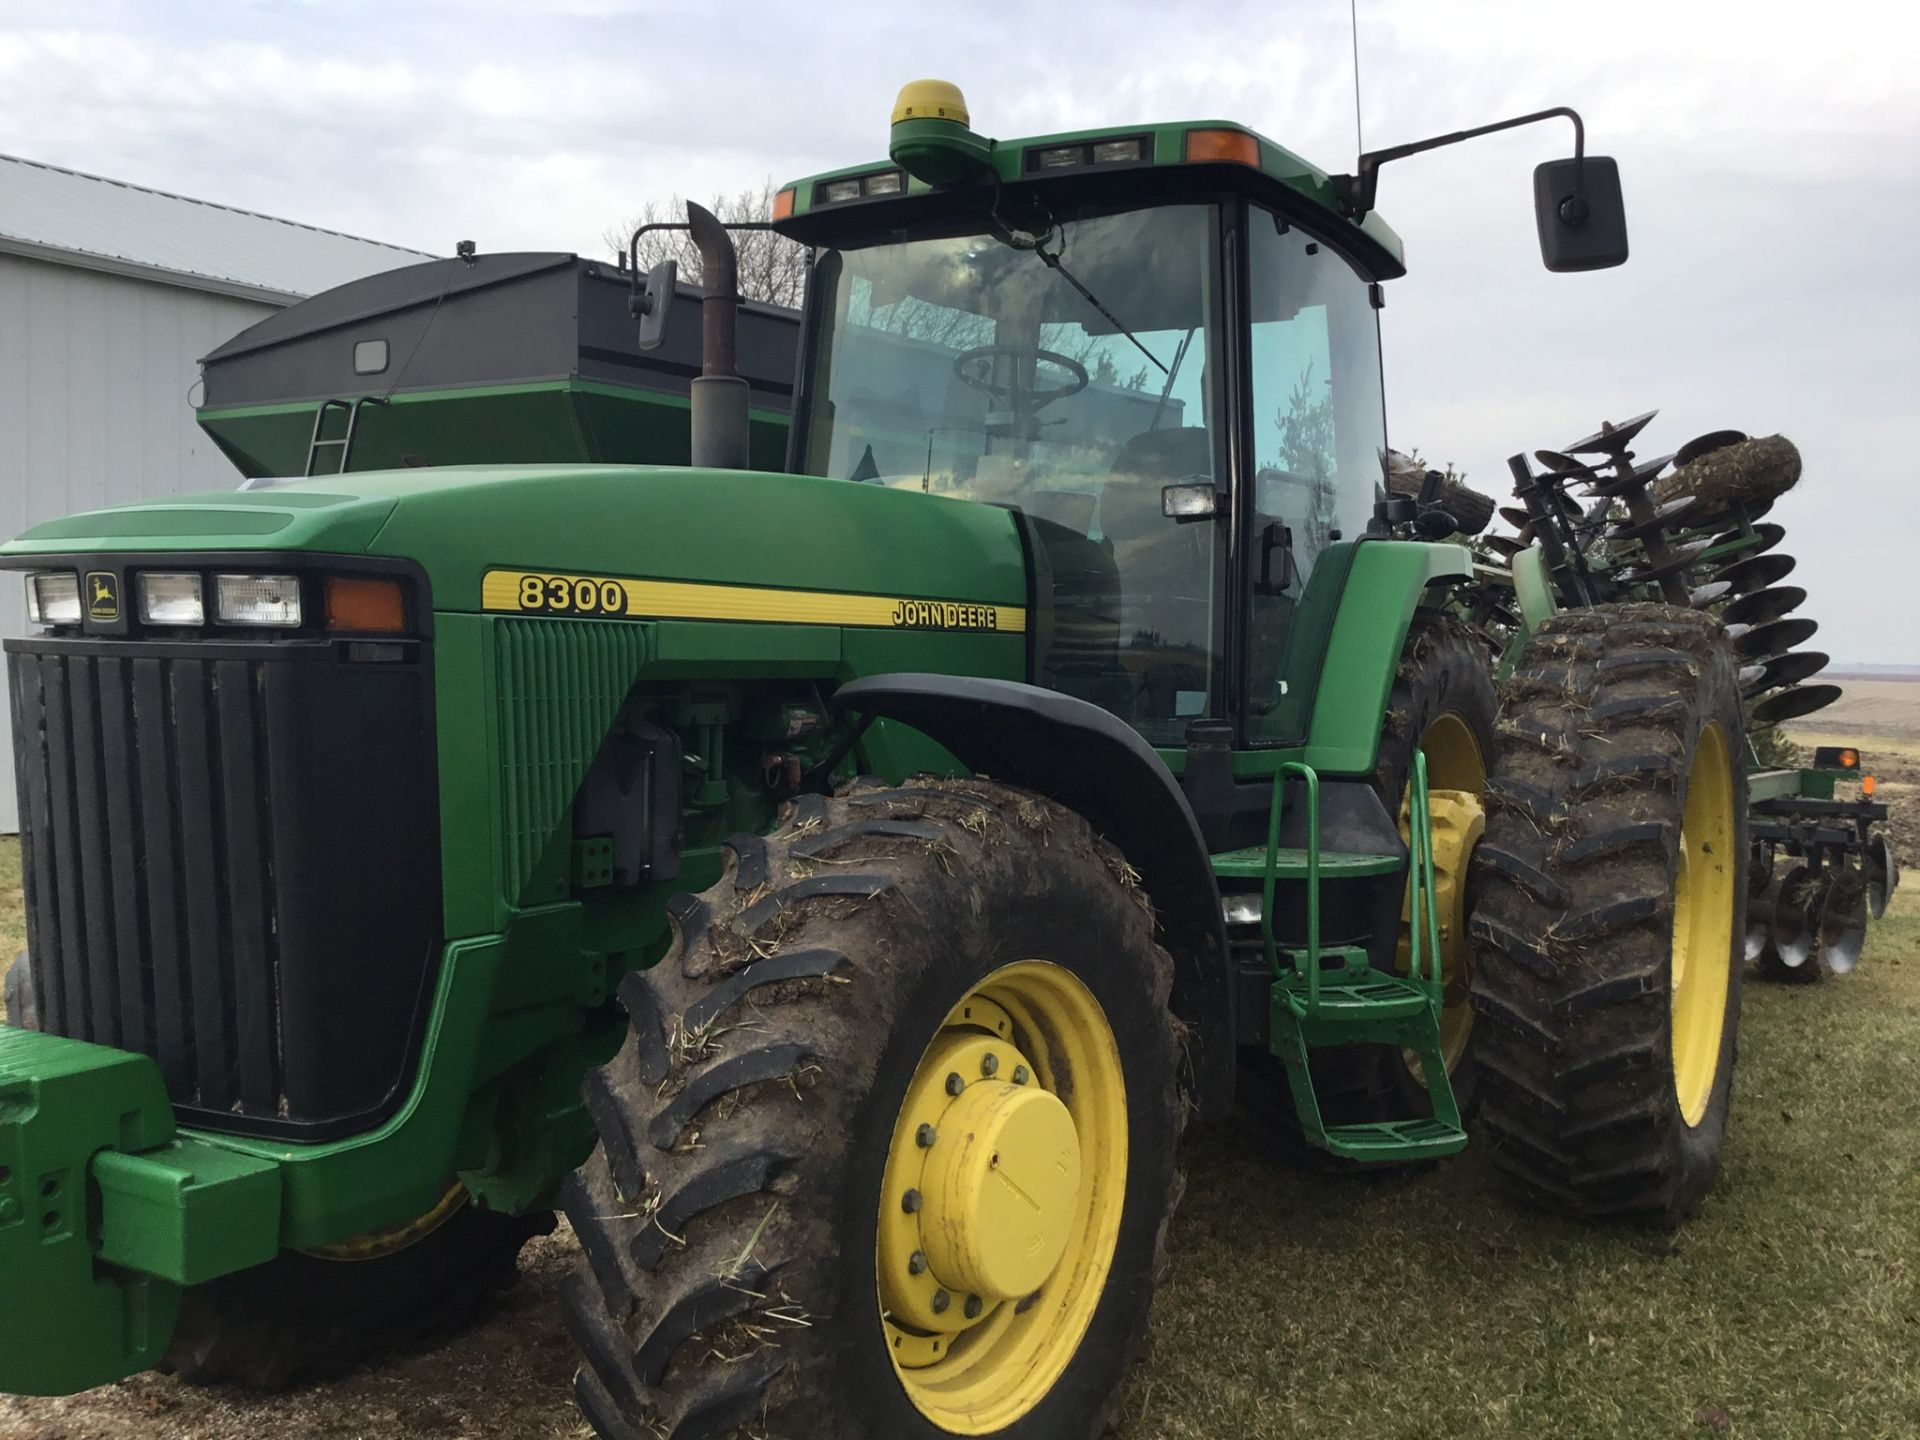 1997 John Deere 8300 MFWD, Power Shift, 3 Hydraulic Remotes, 3 Pt., Quick Hitch, PTO, Green Star - Image 23 of 25